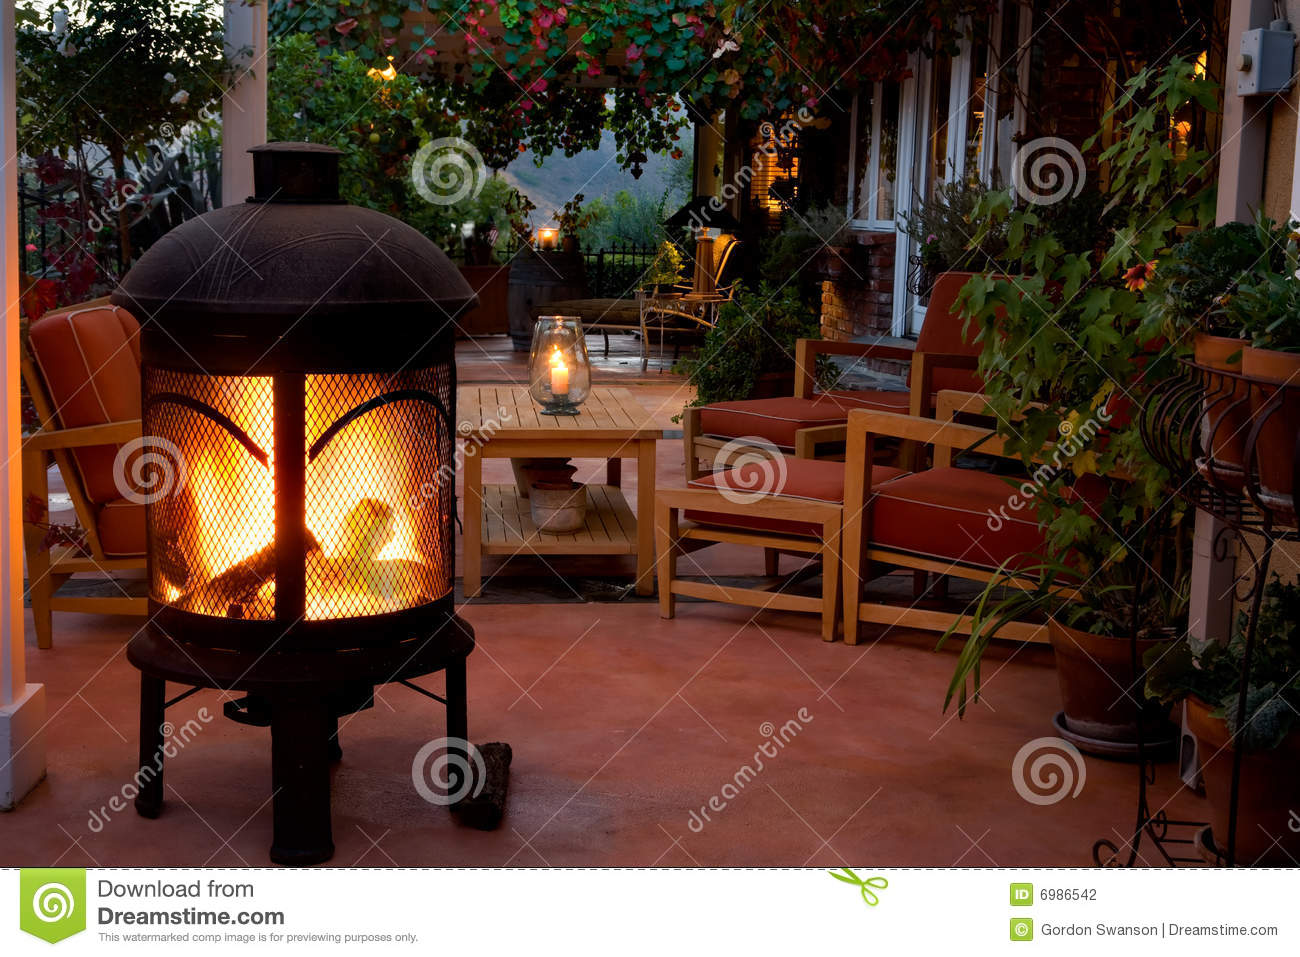 outside table and chairs for 2 chair 1 backyard patio fireplace stock photography - image: 6986542